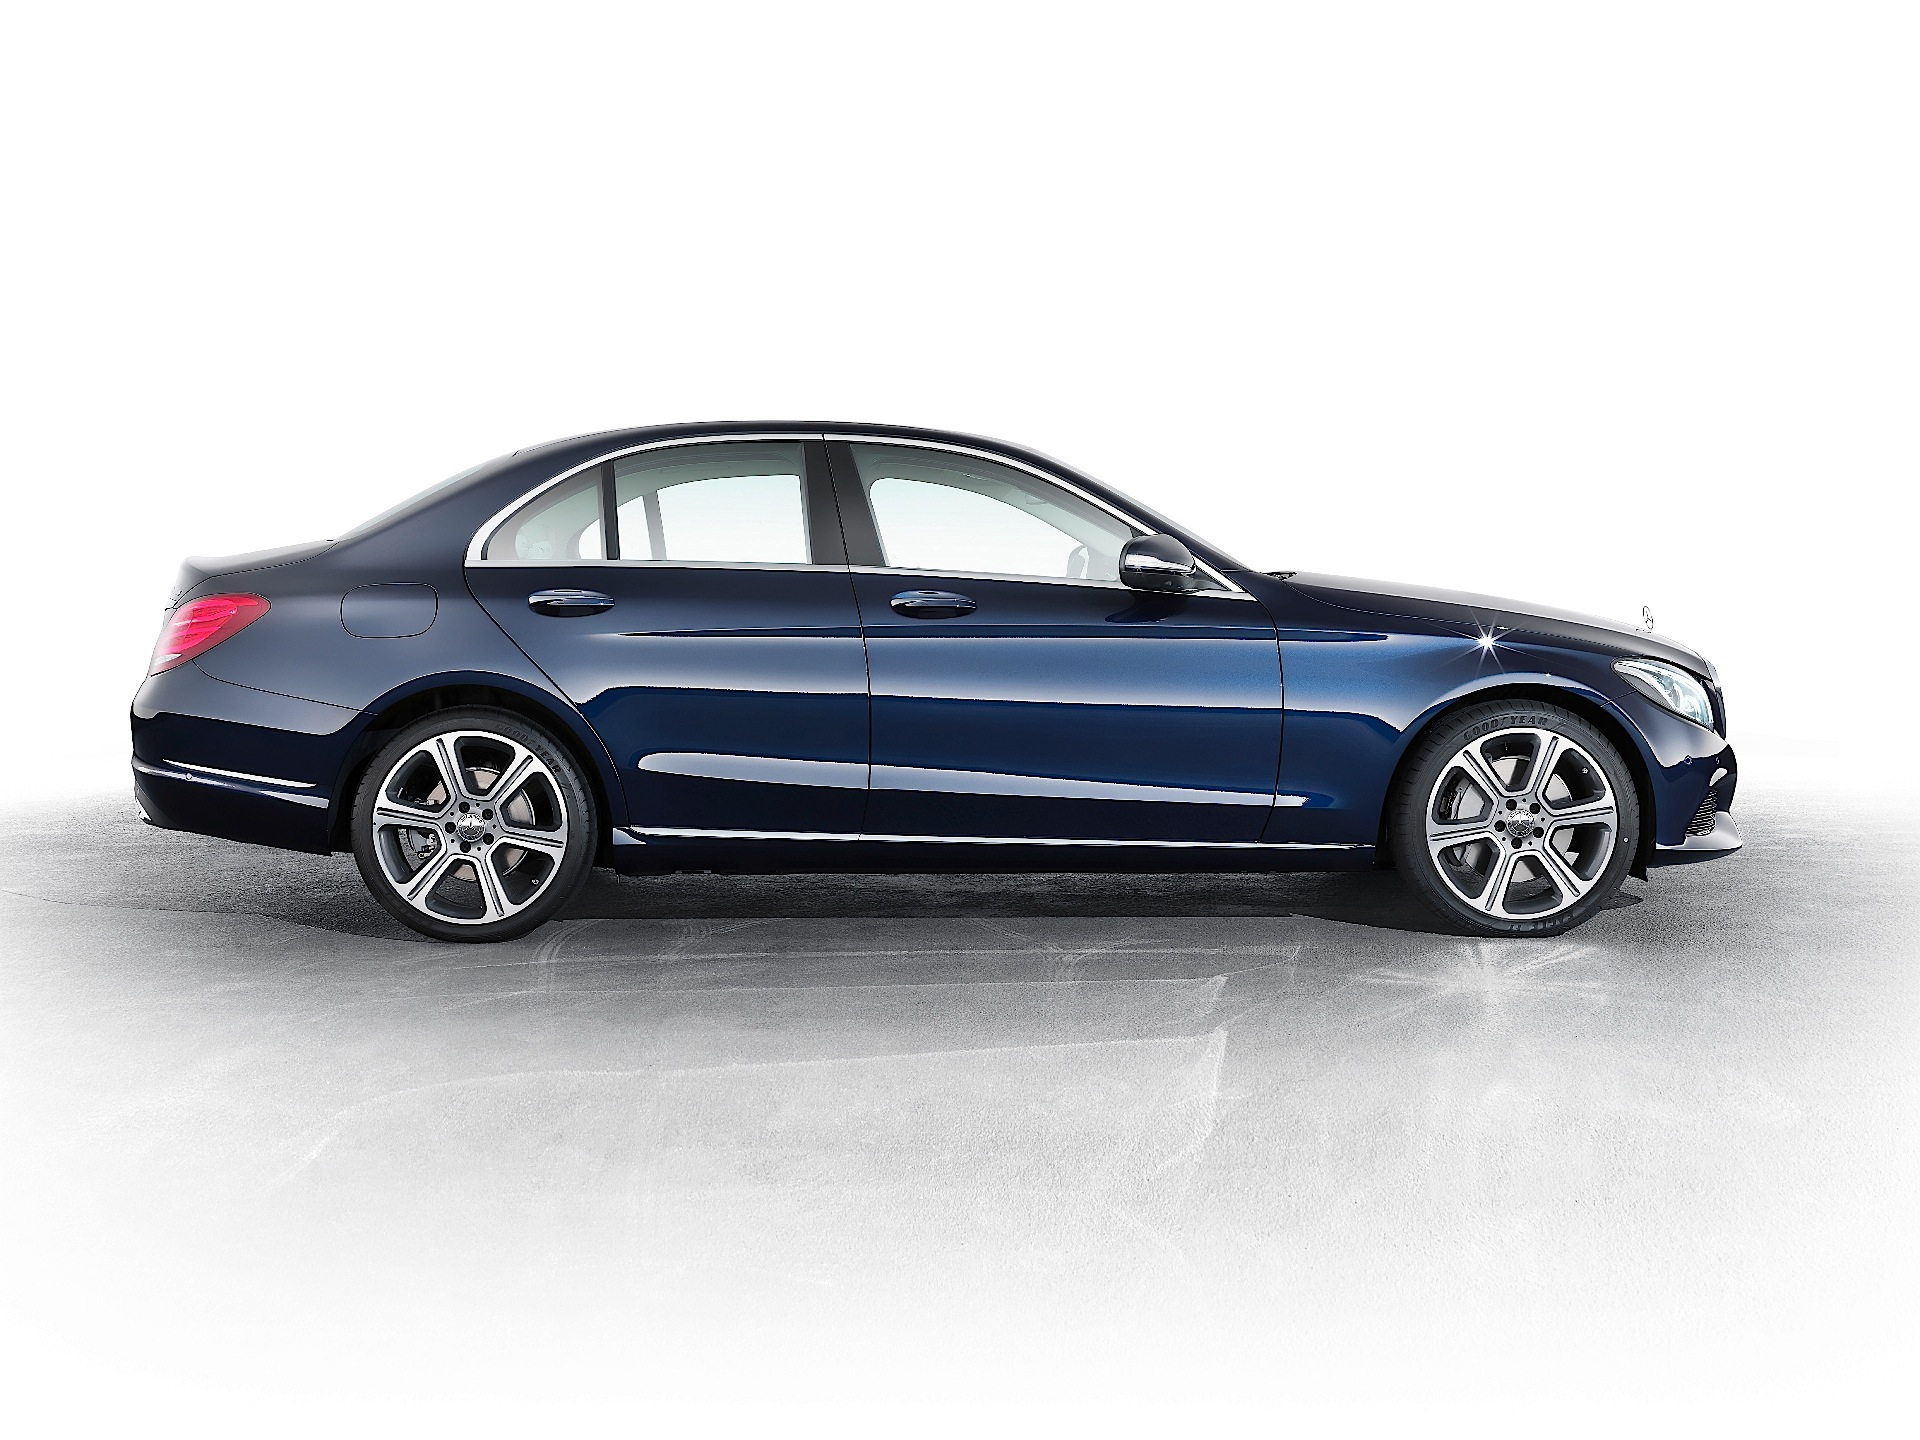 Mercedes benz c class w205 specs 2014 2015 2016 for Mercedes benz c350 horsepower